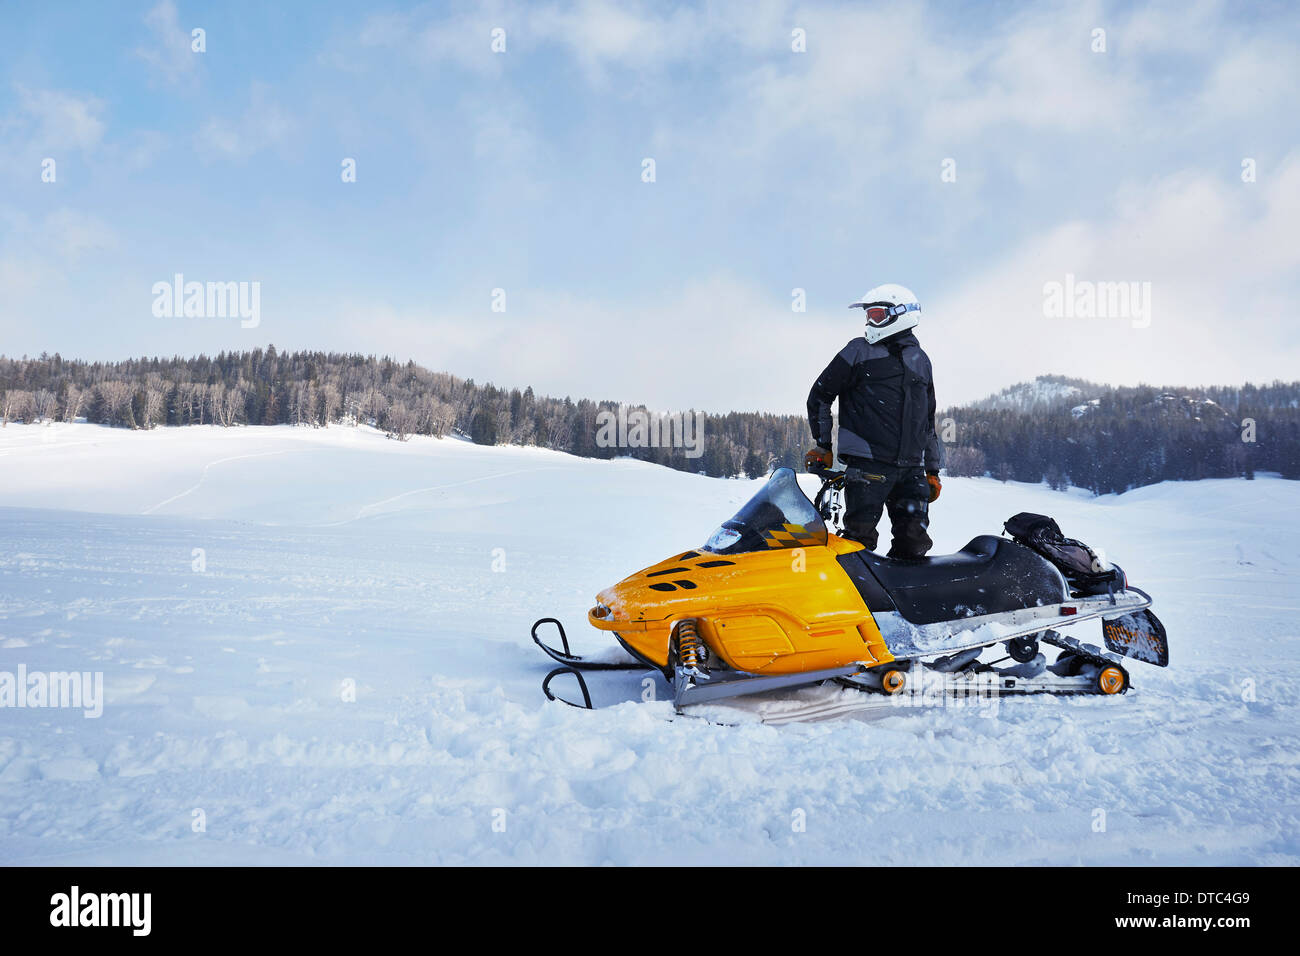 Mid adult man on snowmobile, Togwotee Pass, Wyoming, USA - Stock Image